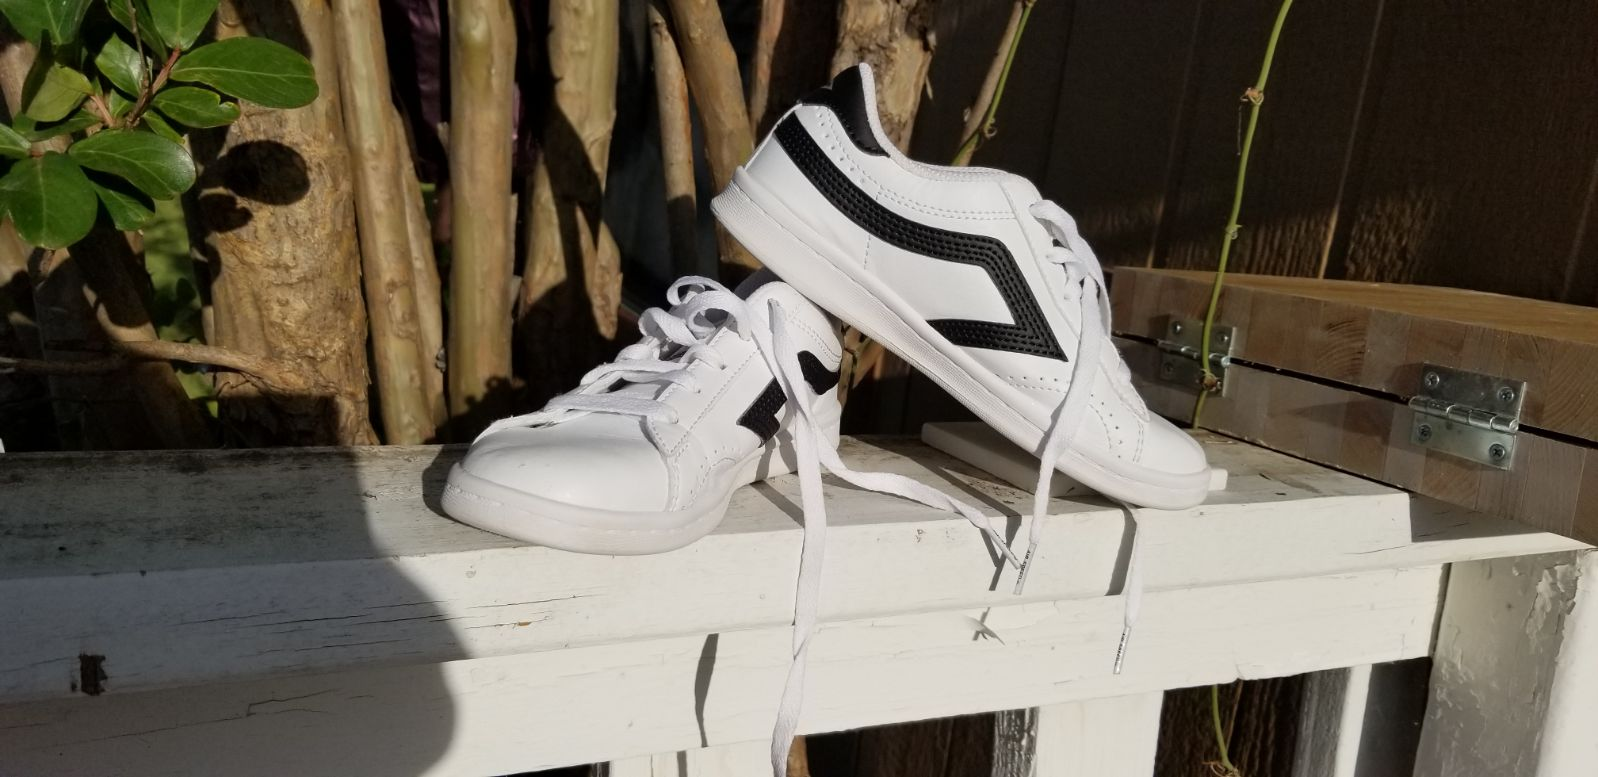 Sport tennis shoes, tennis shoes,